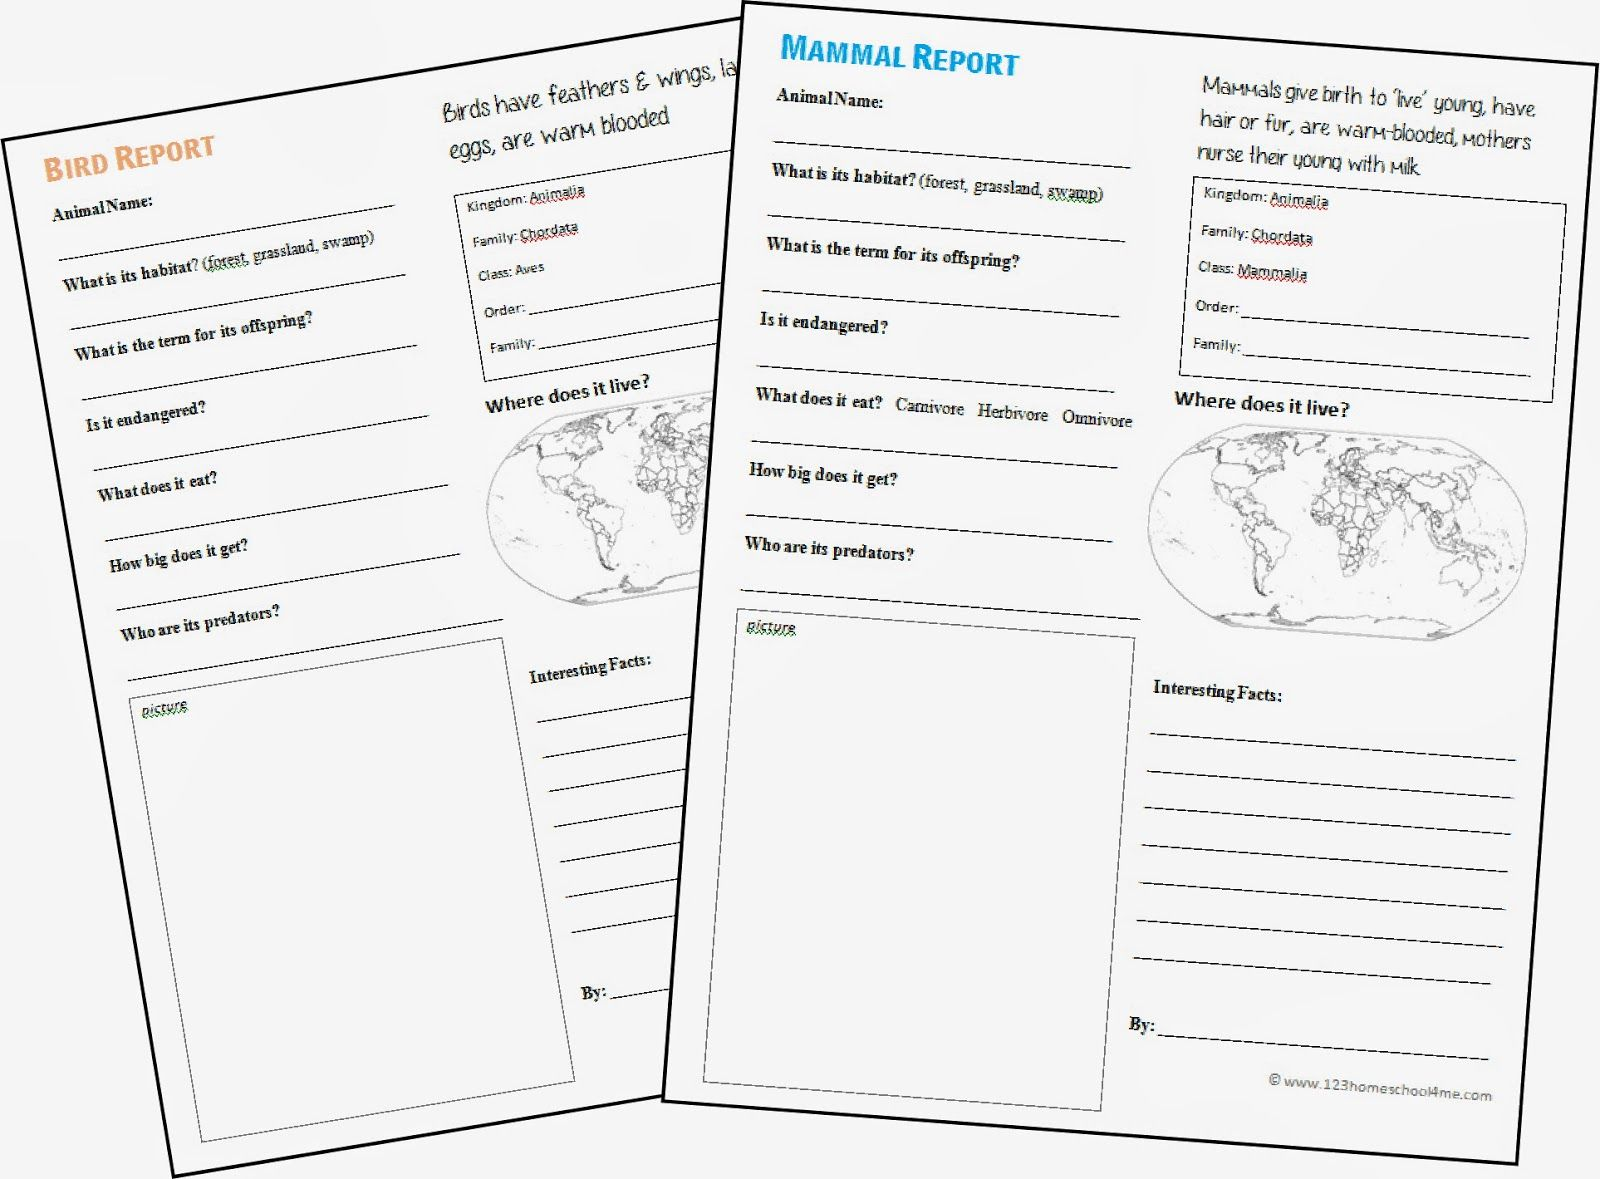 Elementary School Animal Report Forms